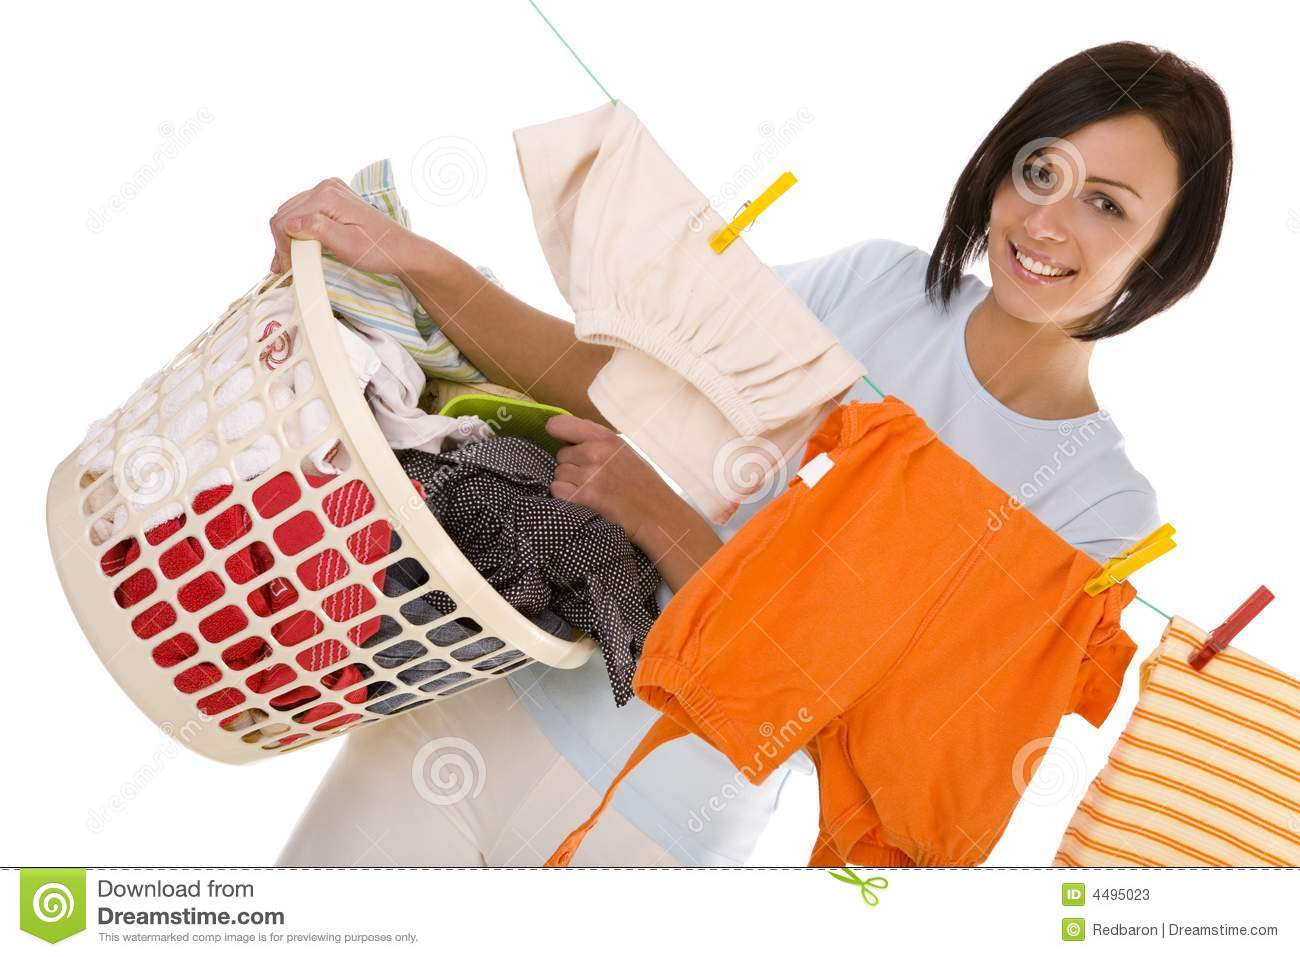 Great day for laundry